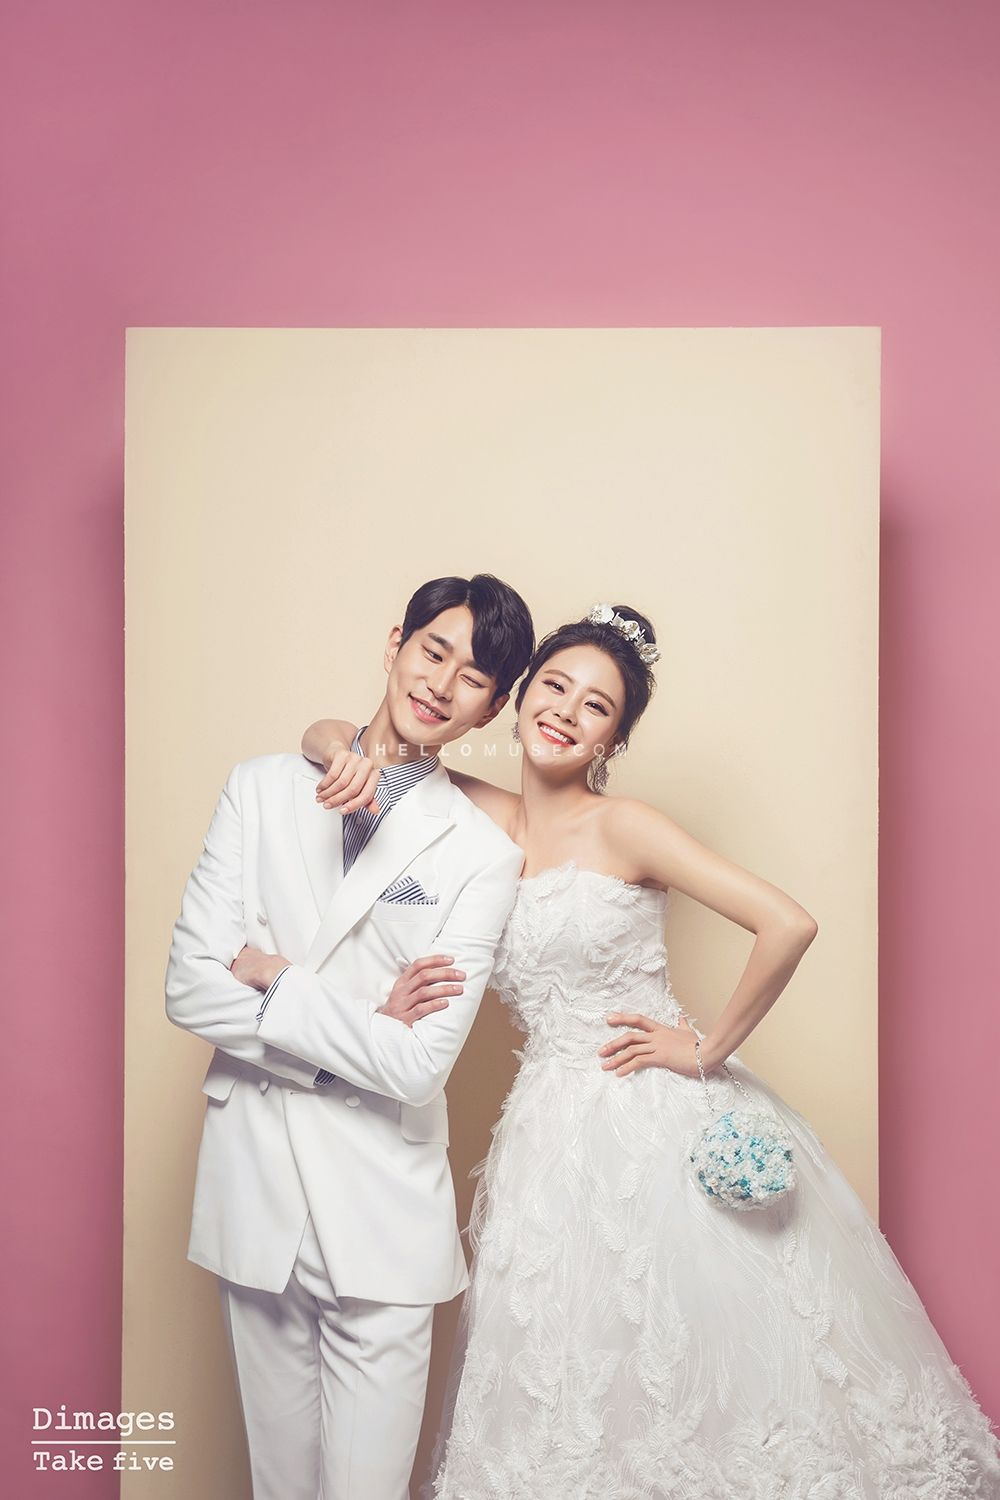 Pin by nguyen long on wedding in pinterest wedding